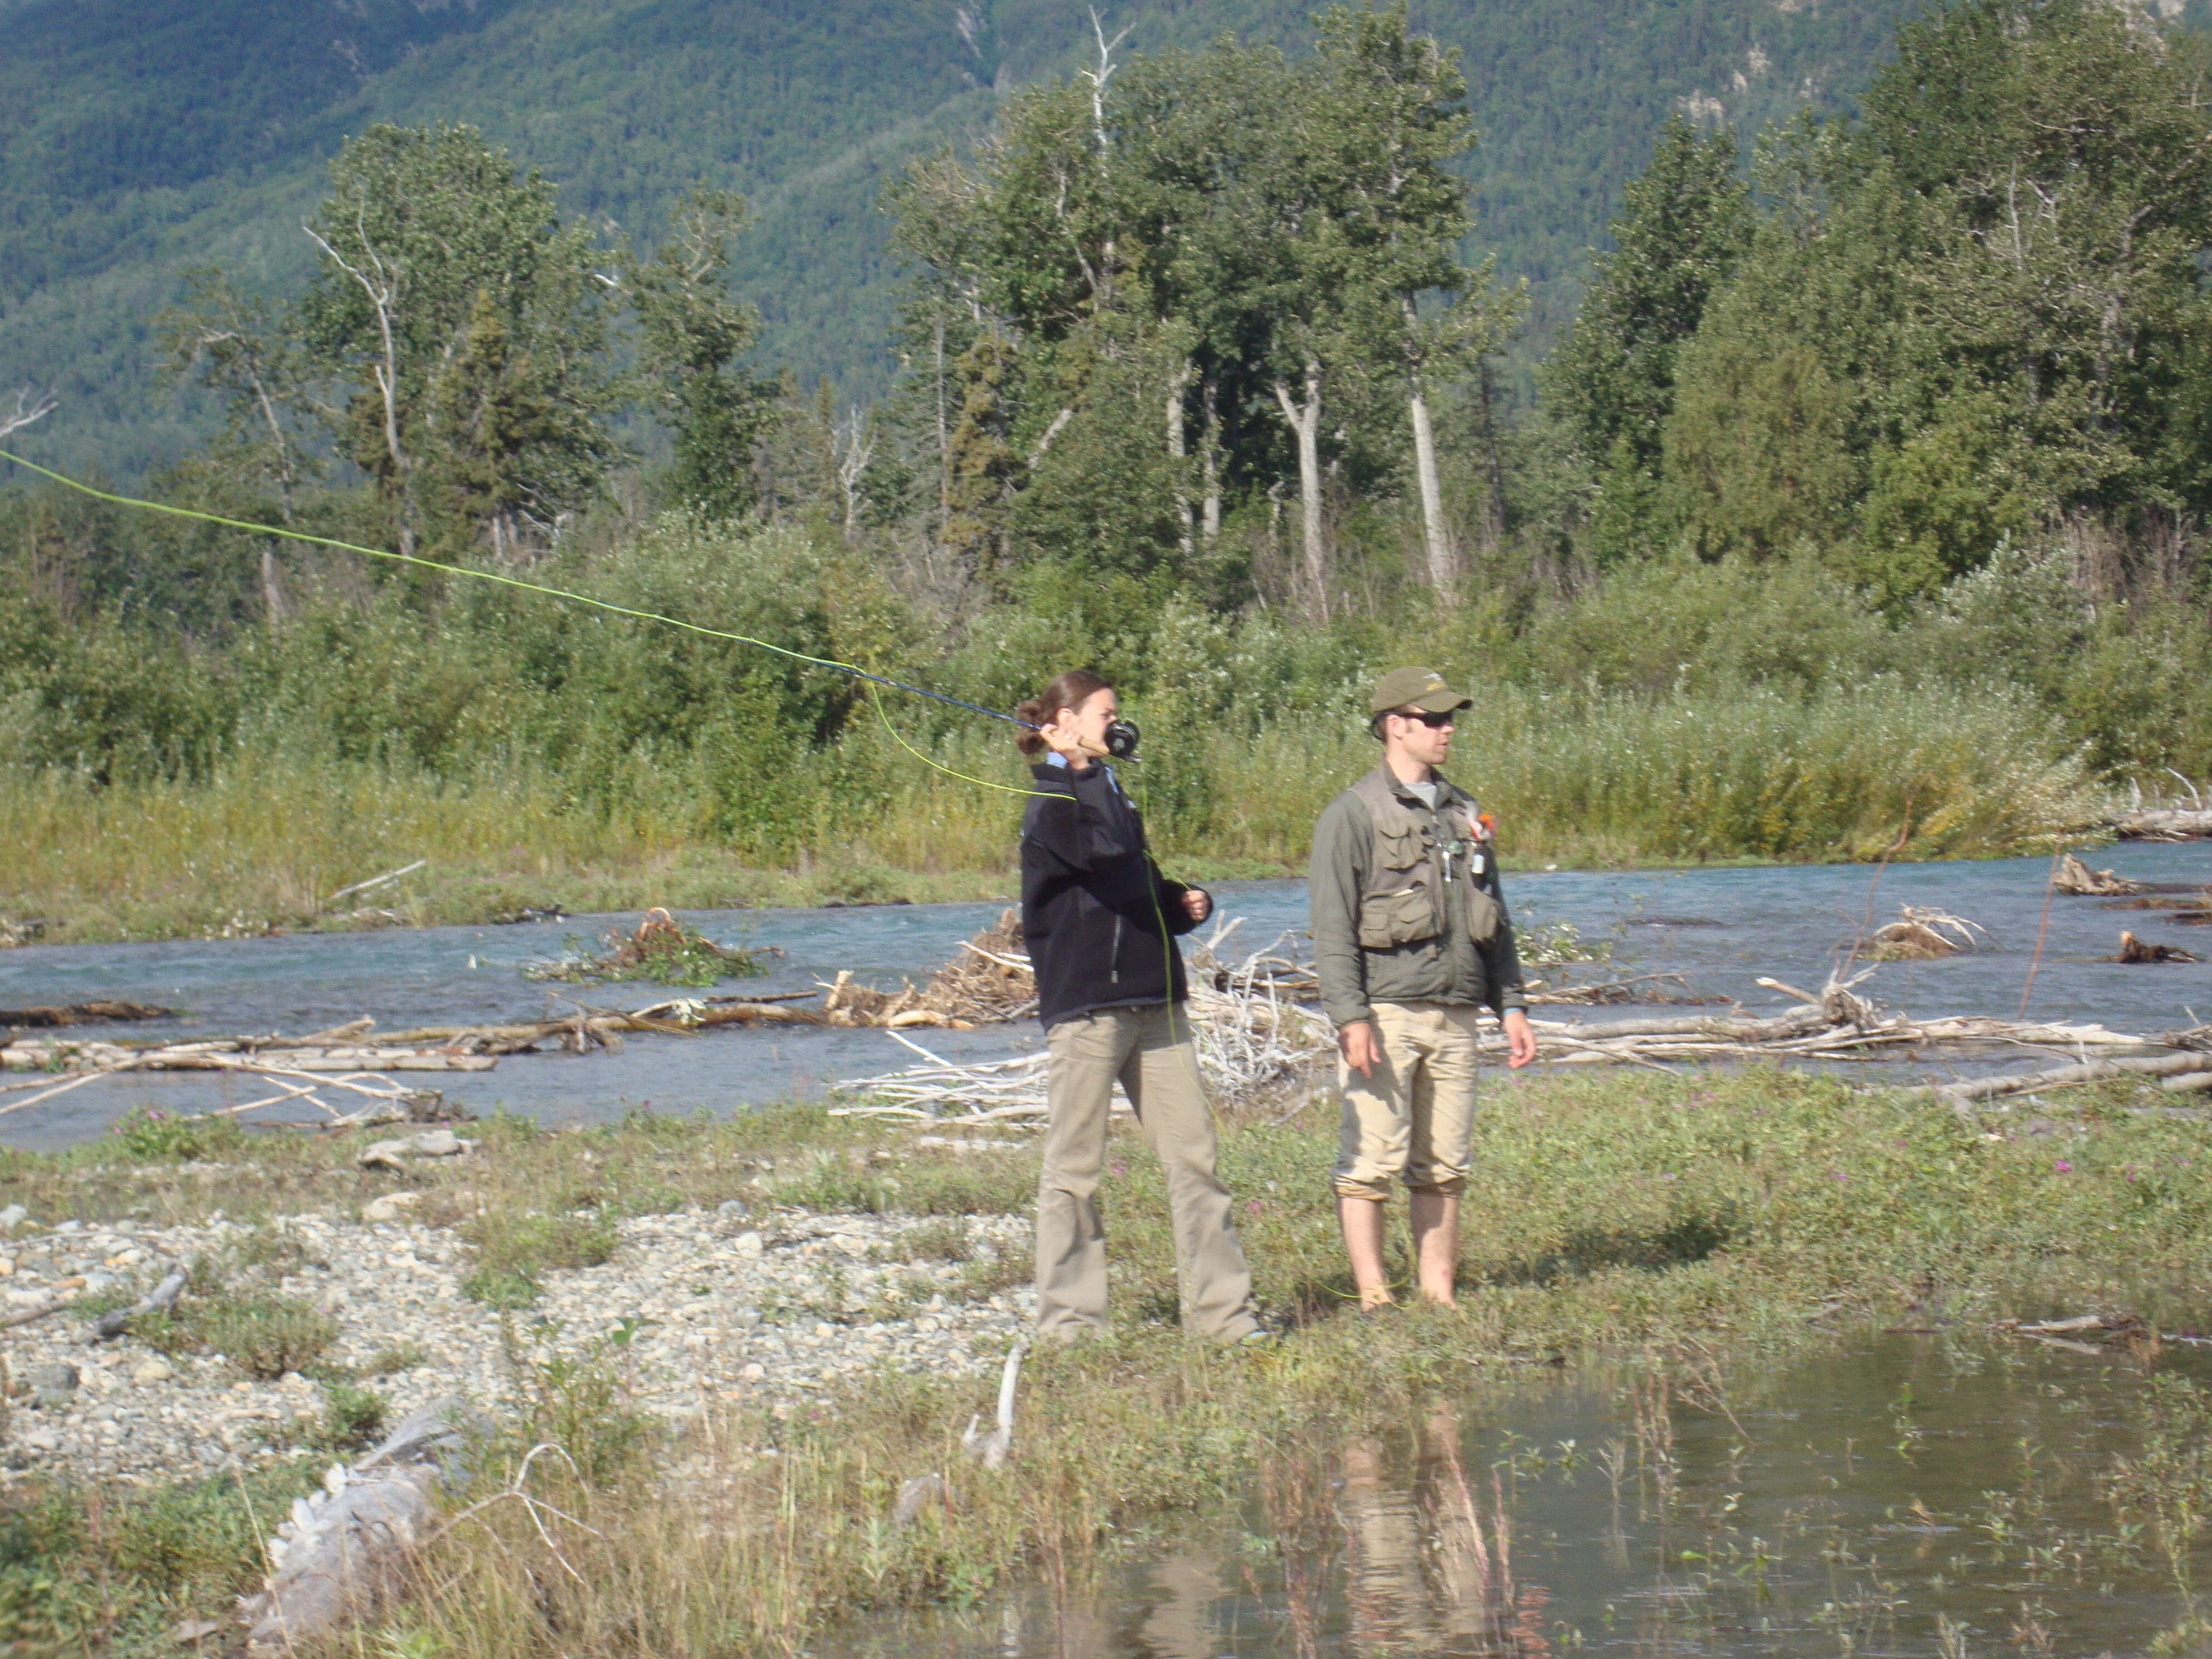 15 days of summer memo no 1 anna burrows mission memos for Ascent fly fishing